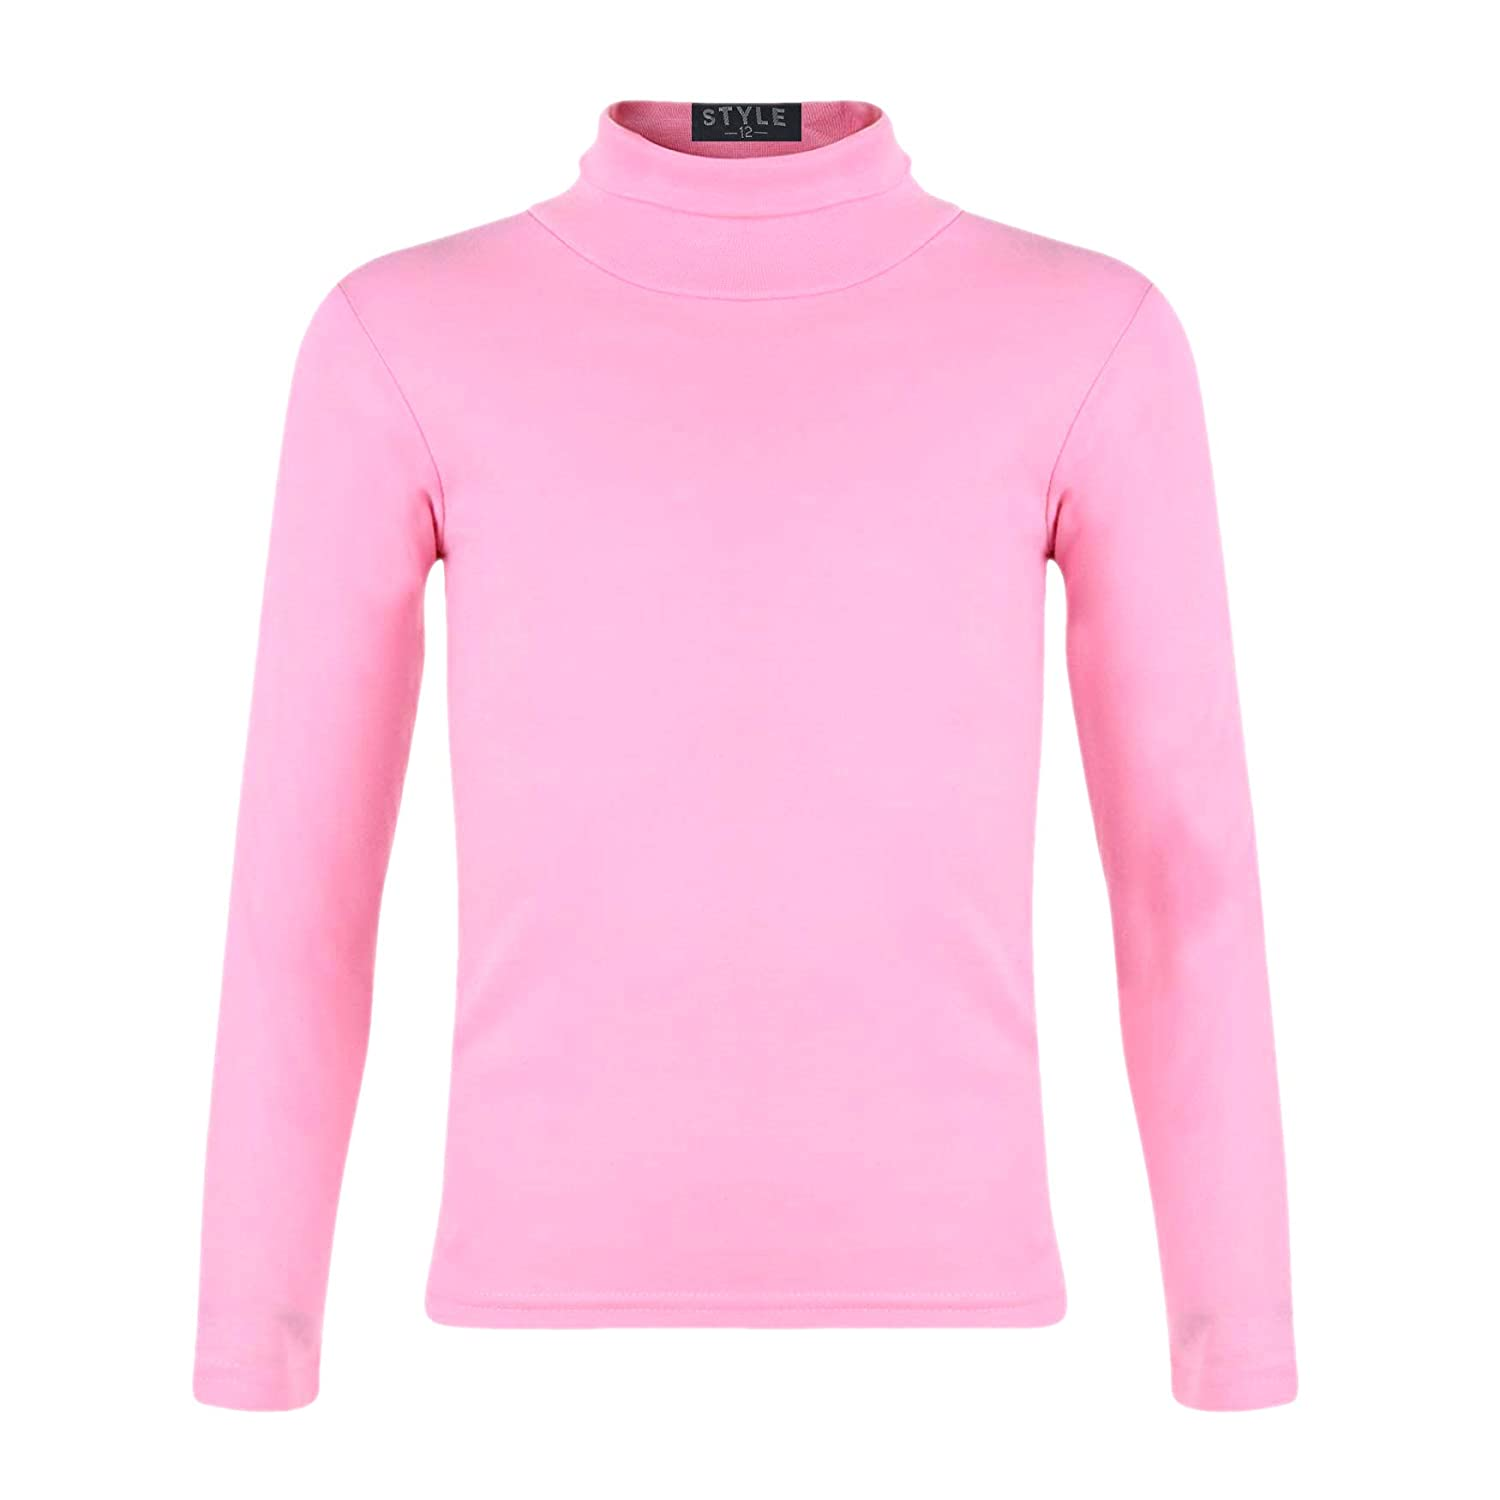 Kids Turtleneck Long Sleeve Plain Basic Top Girls Boys Jersey Polo Tops 2-14 Yr